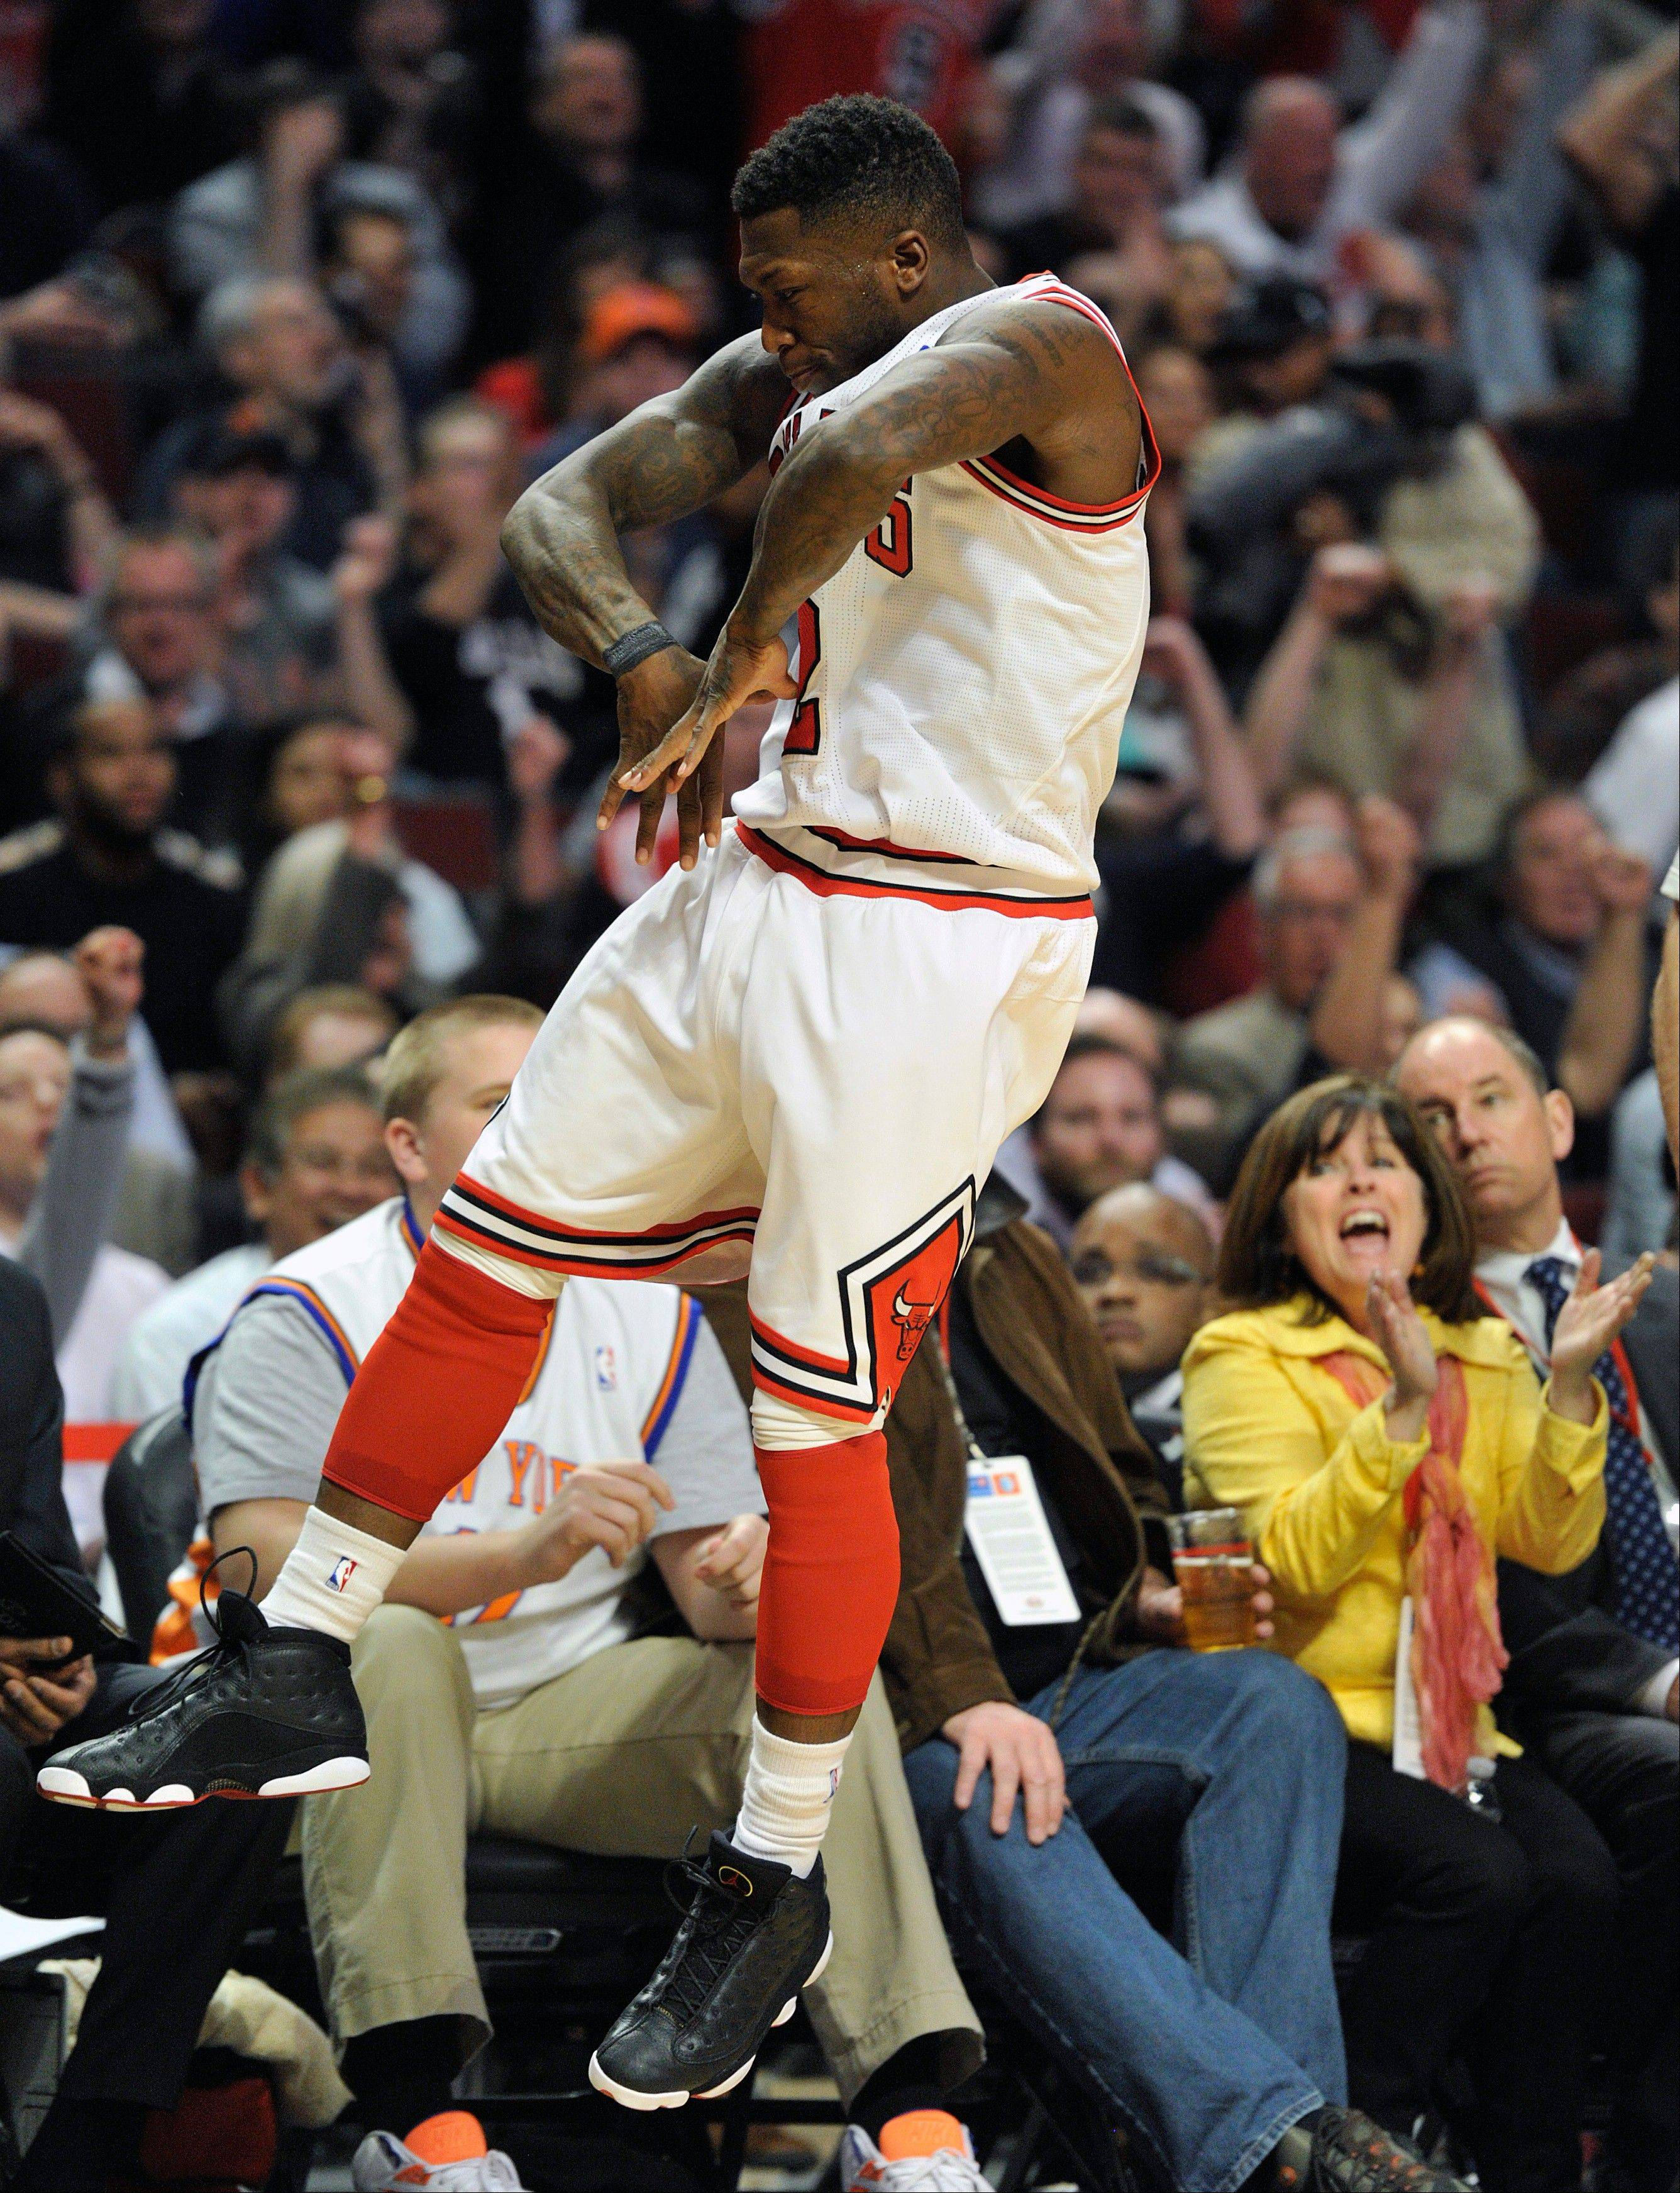 Chicago Bulls' Nate Robinson reacts after a 3-pointer against the New York Knicks during the second half of an NBA basketball game, Thursday, April 11, 2013, in Chicago. The Bulls won 118-111 in overtime.